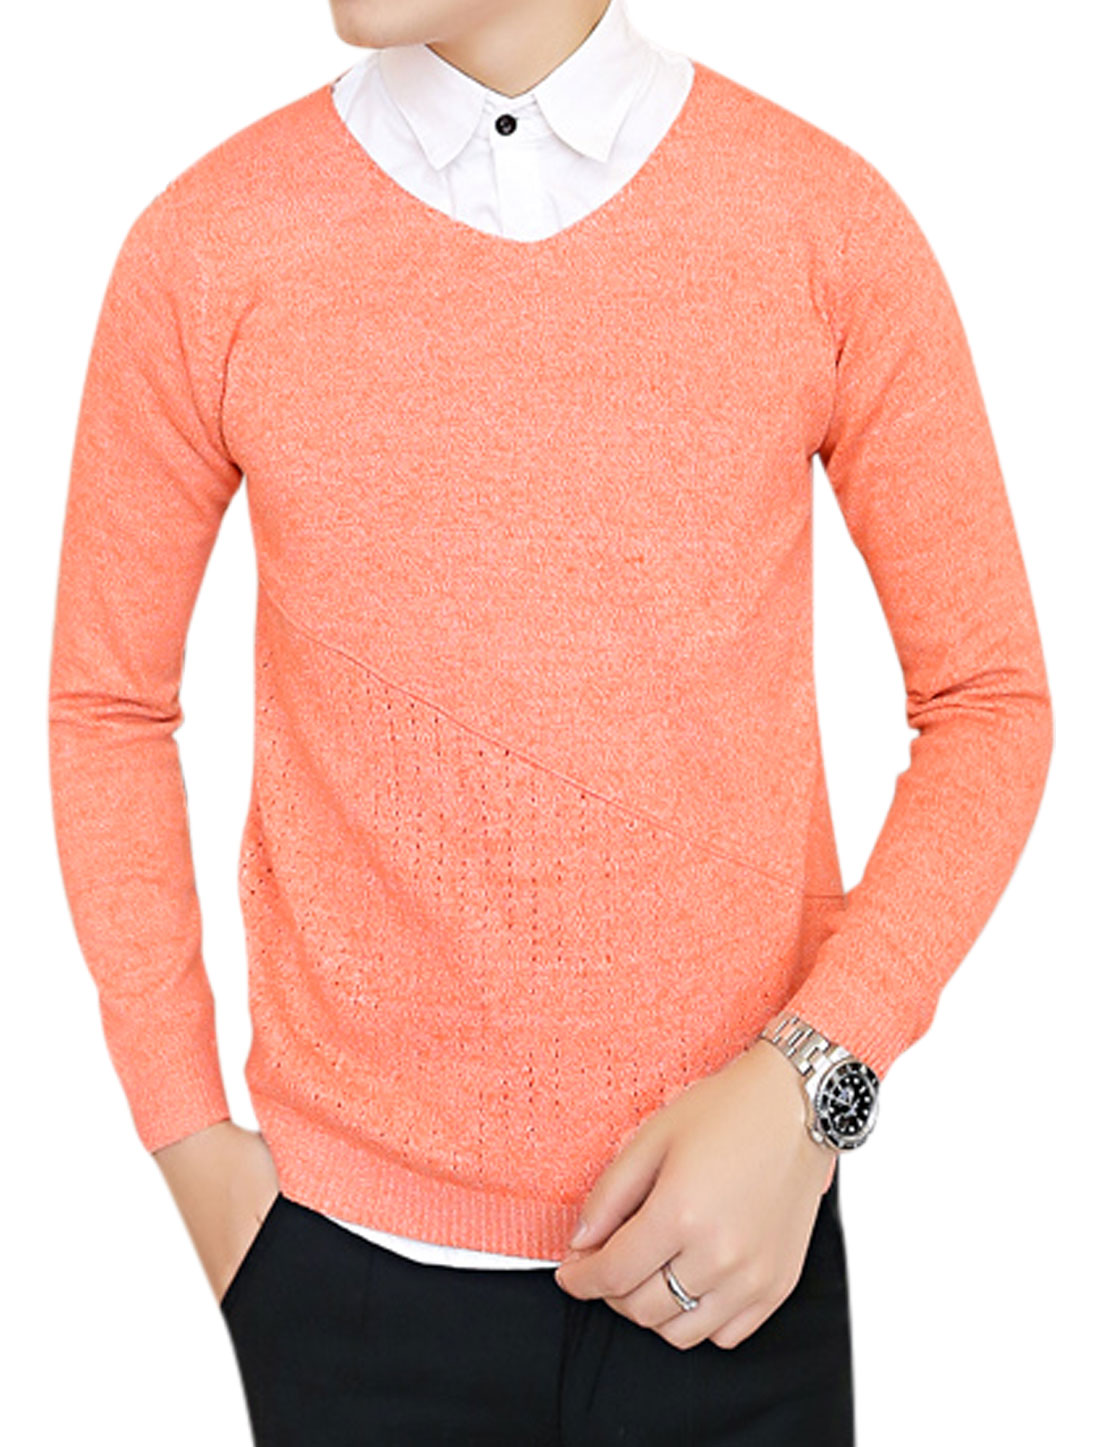 Casual Chic V Neck Slim Fit Orange Sweater for Man S